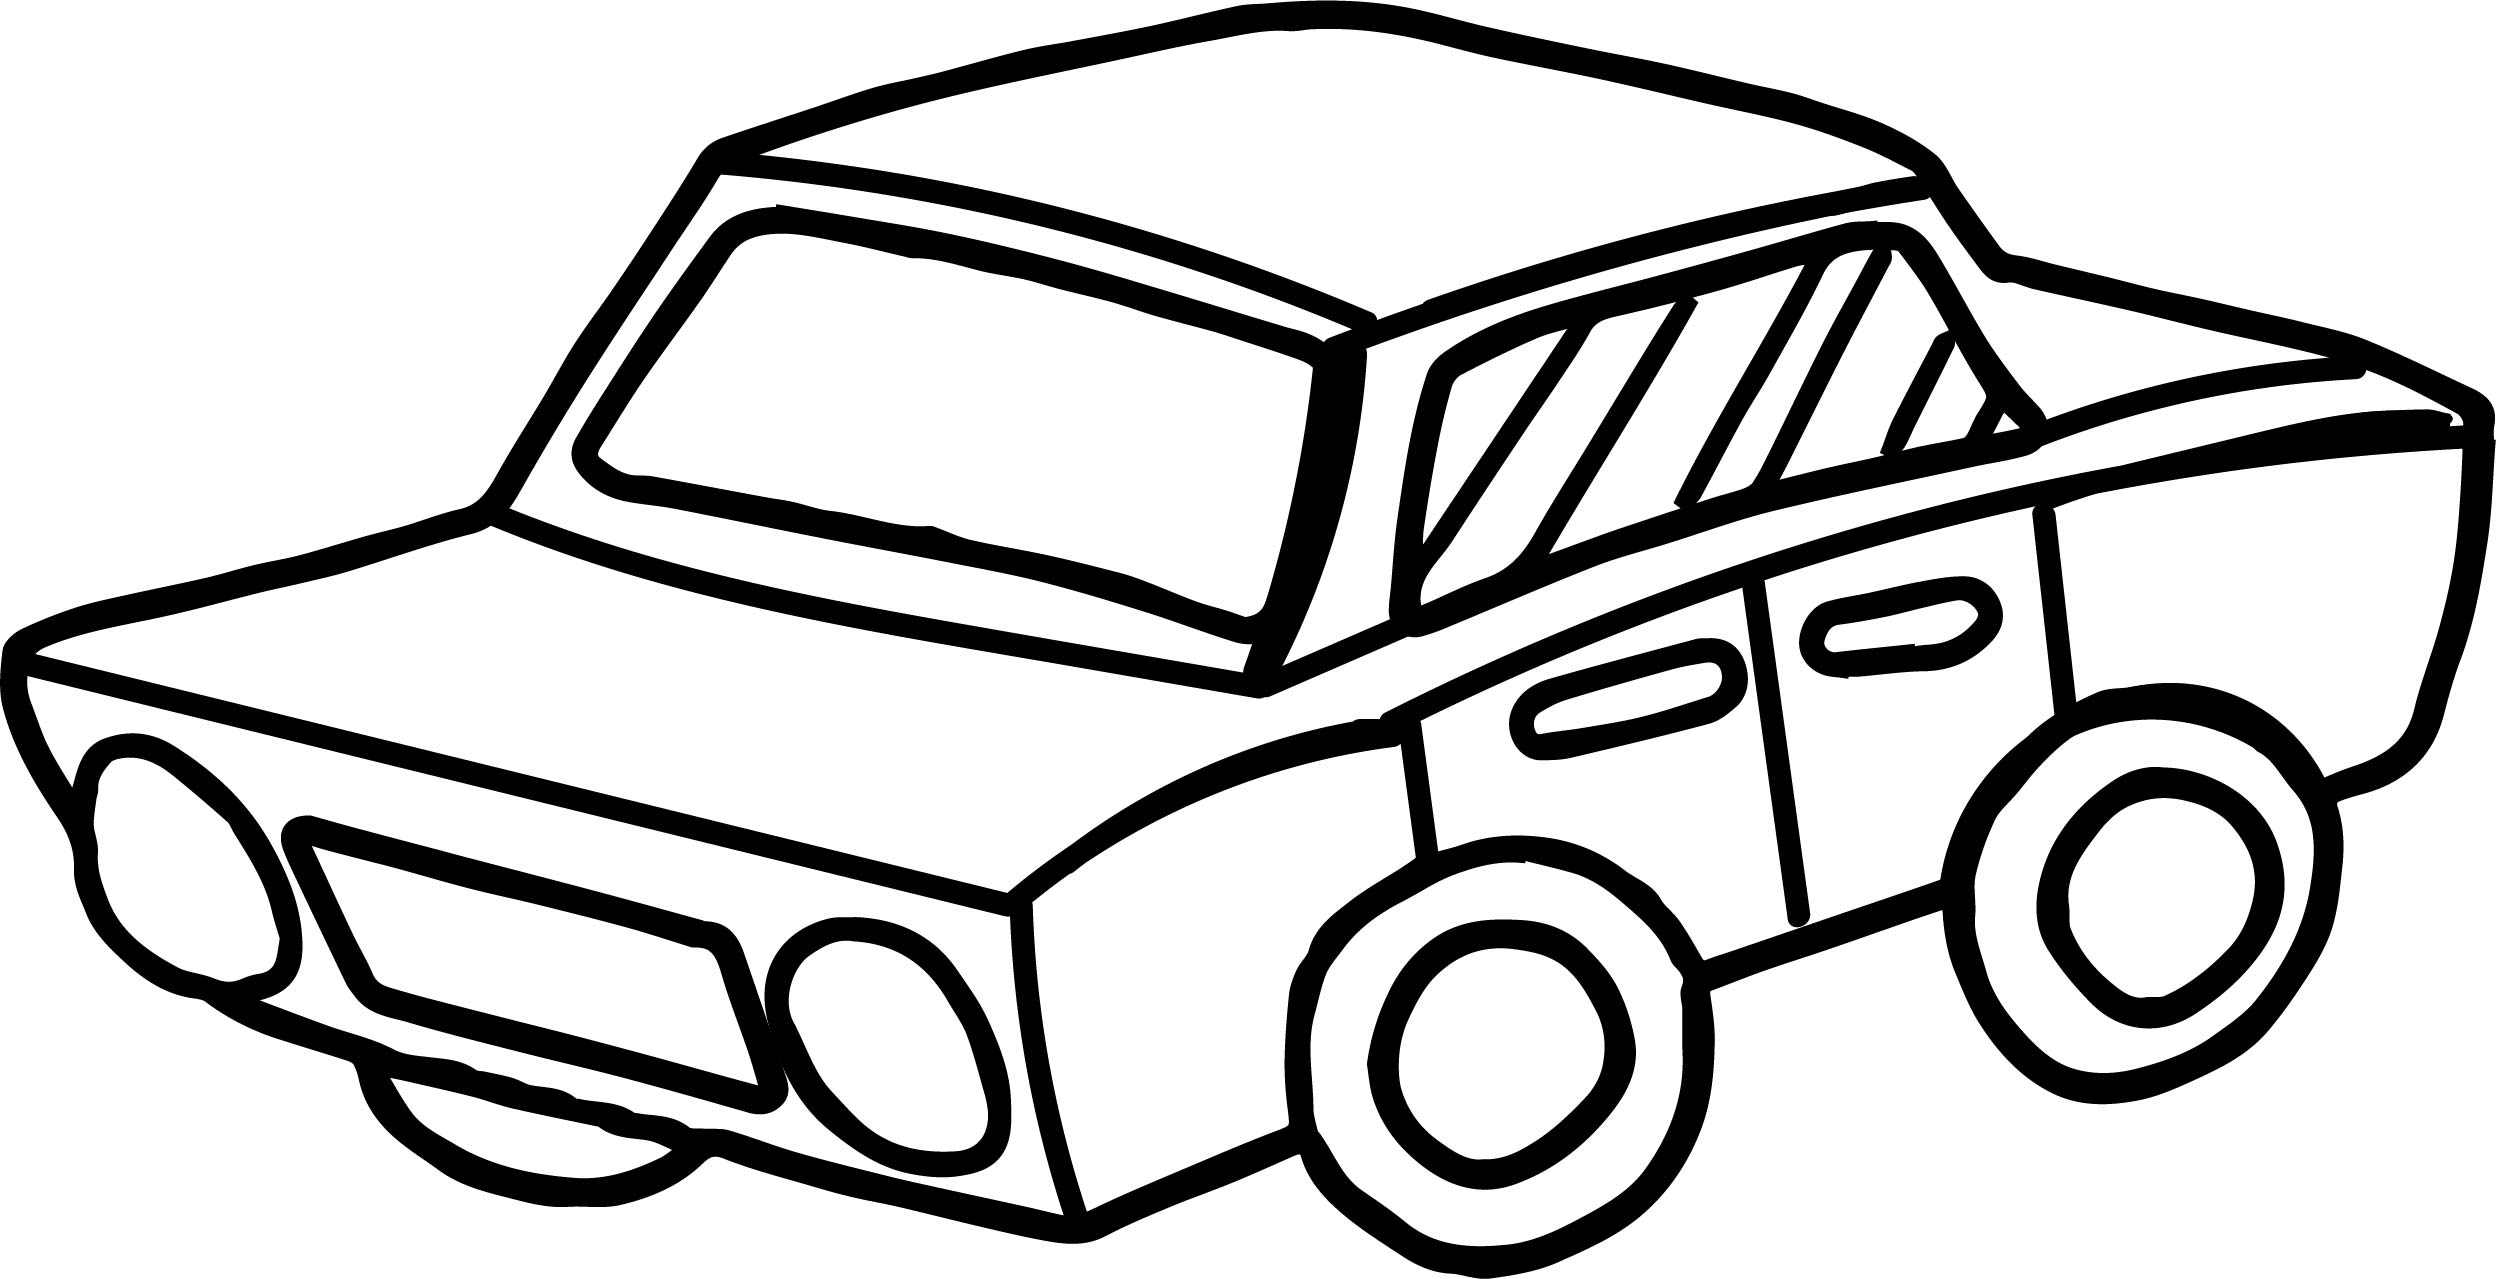 toy car coloring pages - photo#24